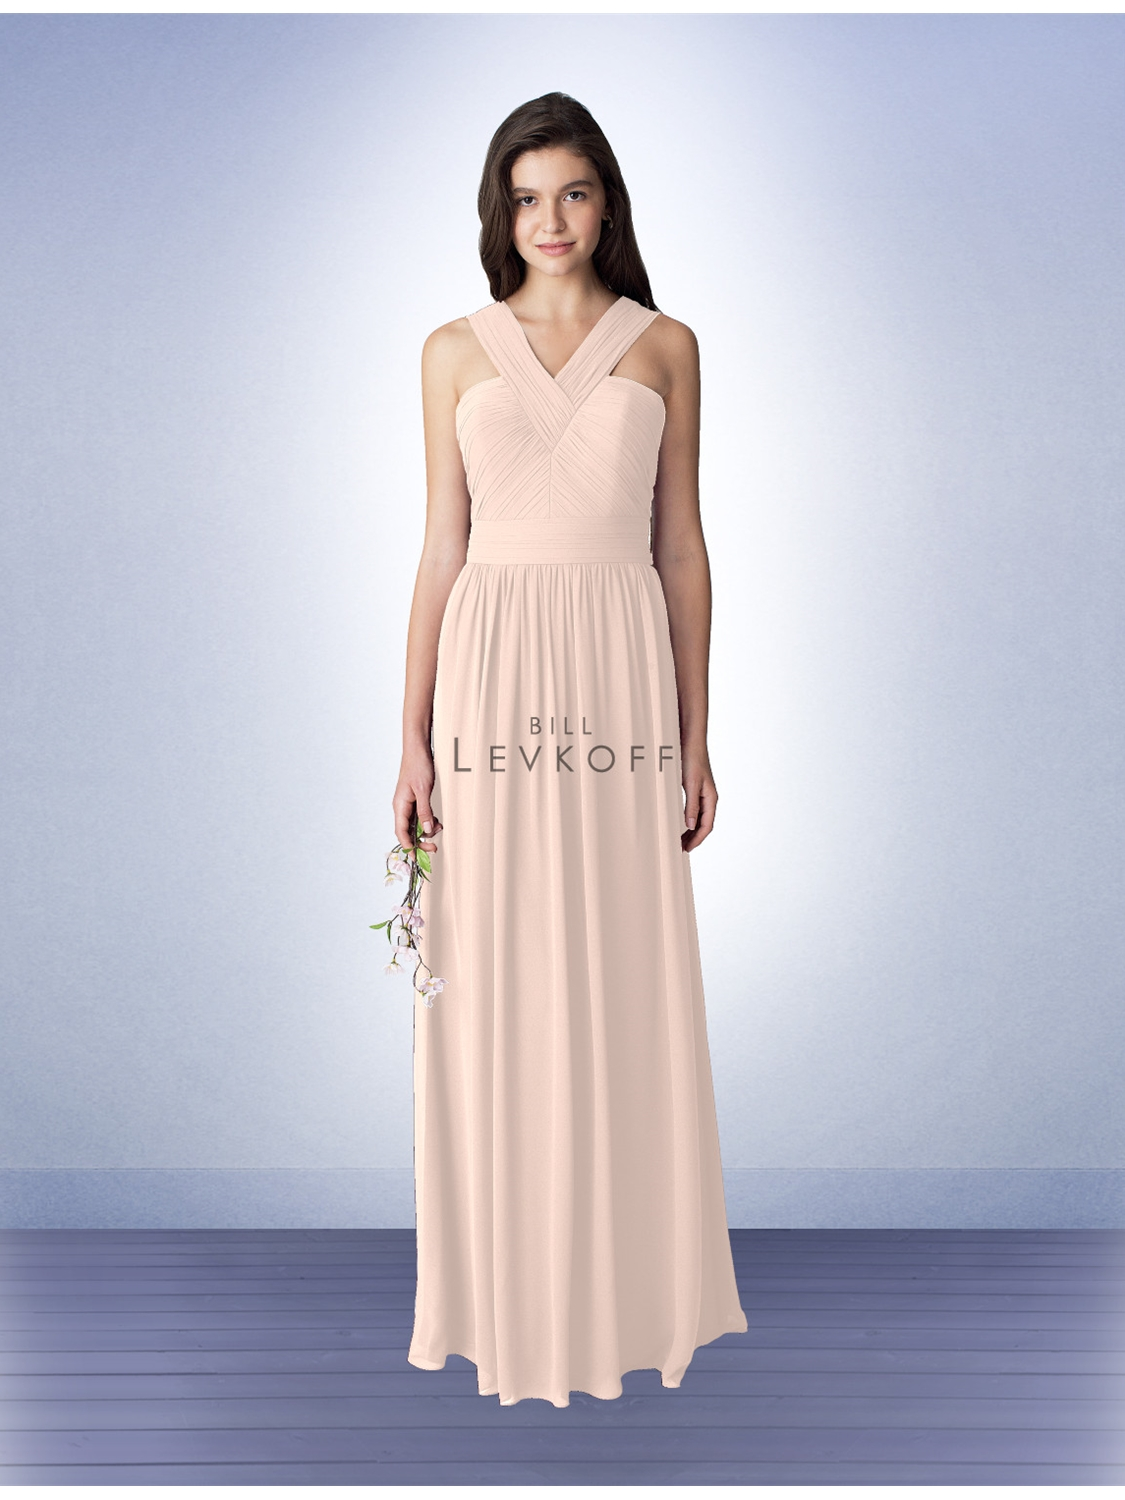 Bill levkoff bridesmaid dress style 1276 house of brides ombrellifo Gallery